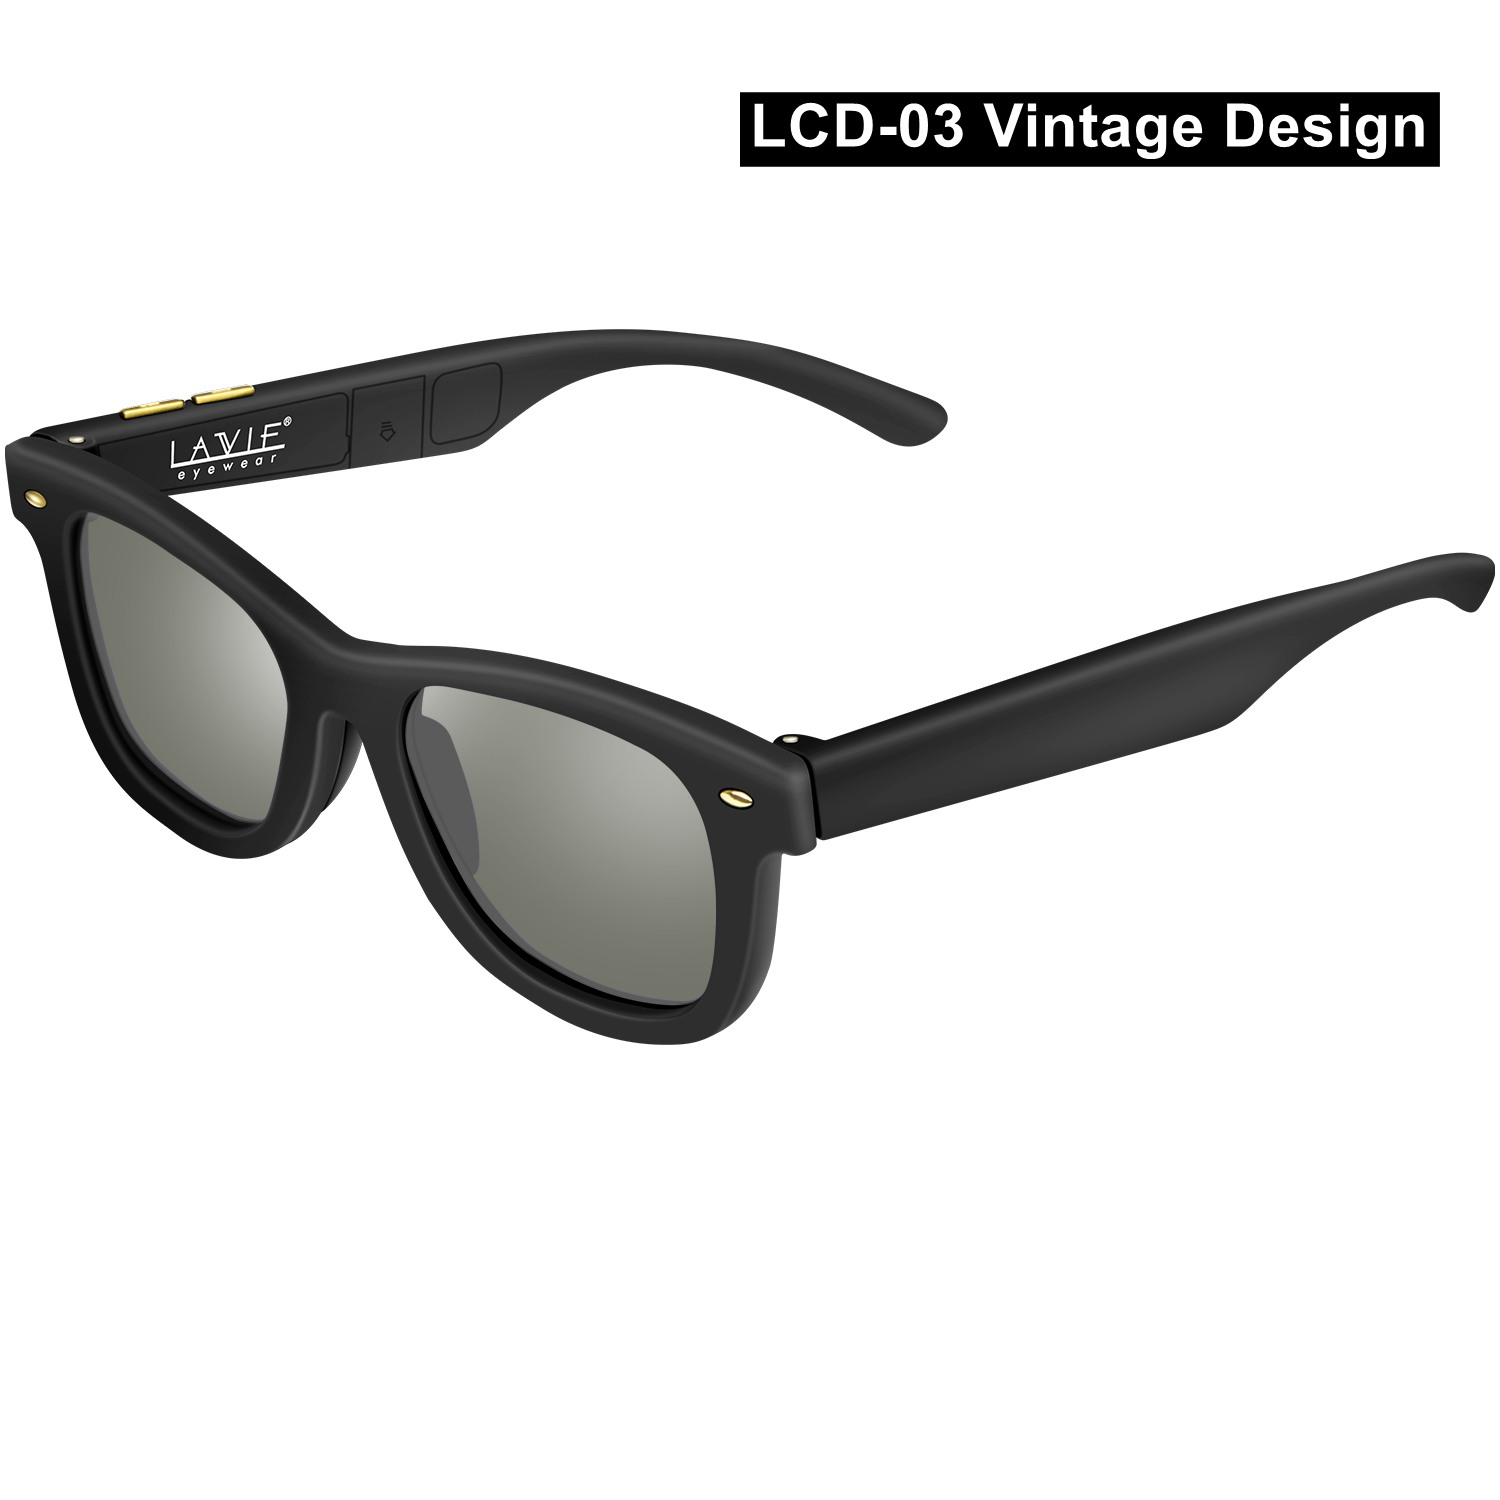 Image 3 - Electronic Adjustable Dimming Sunglasses LCD Original Design Liquid Crystal Polarized Lenses Factory Direct Supply Drop Shipping-in Men's Sunglasses from Apparel Accessories